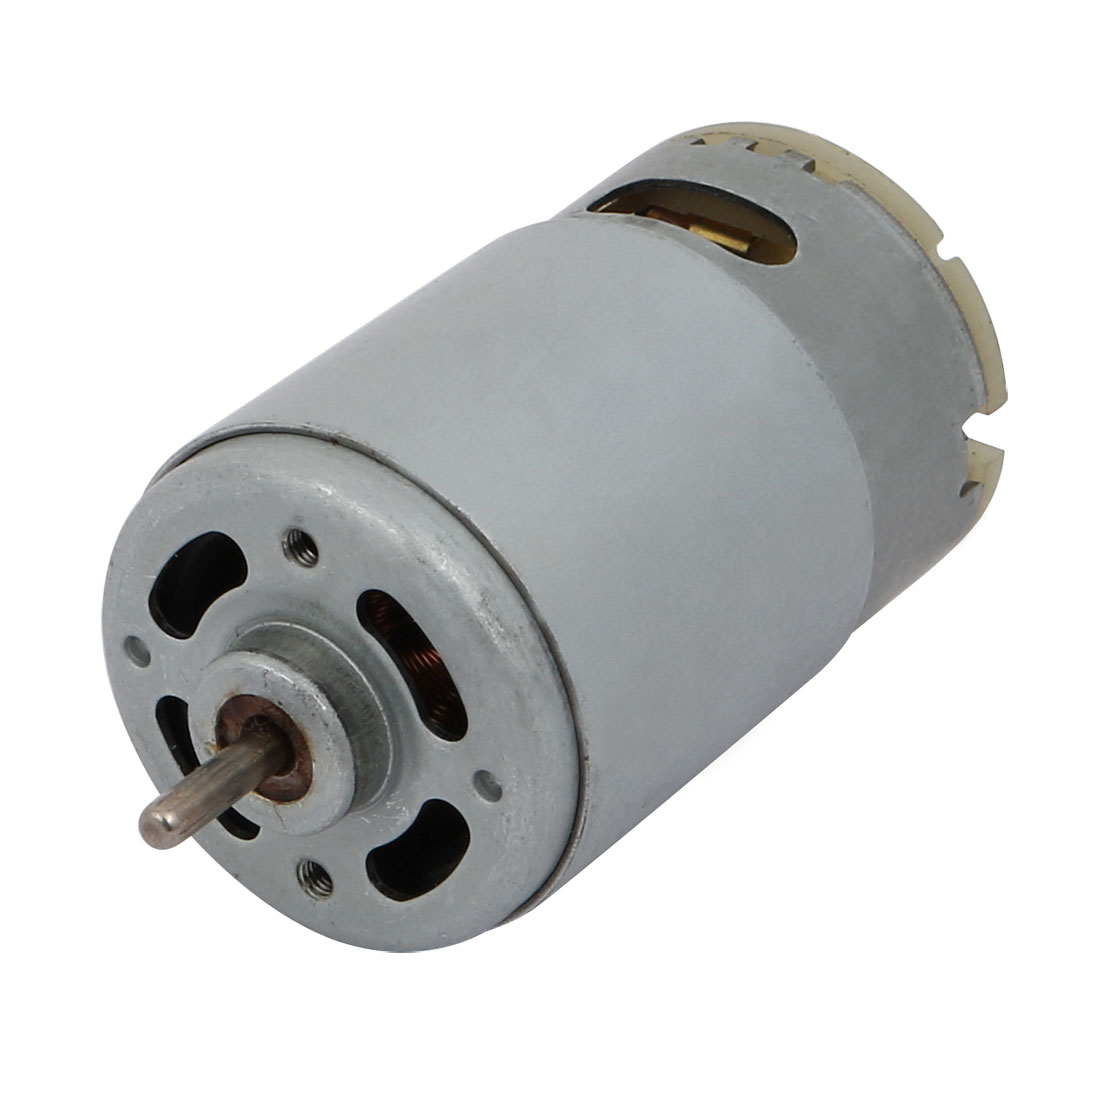 RS555SHP DC6V 2000RPM 3.2mm Dia Shaft Brushed DC Motor for DIY Electric Projects